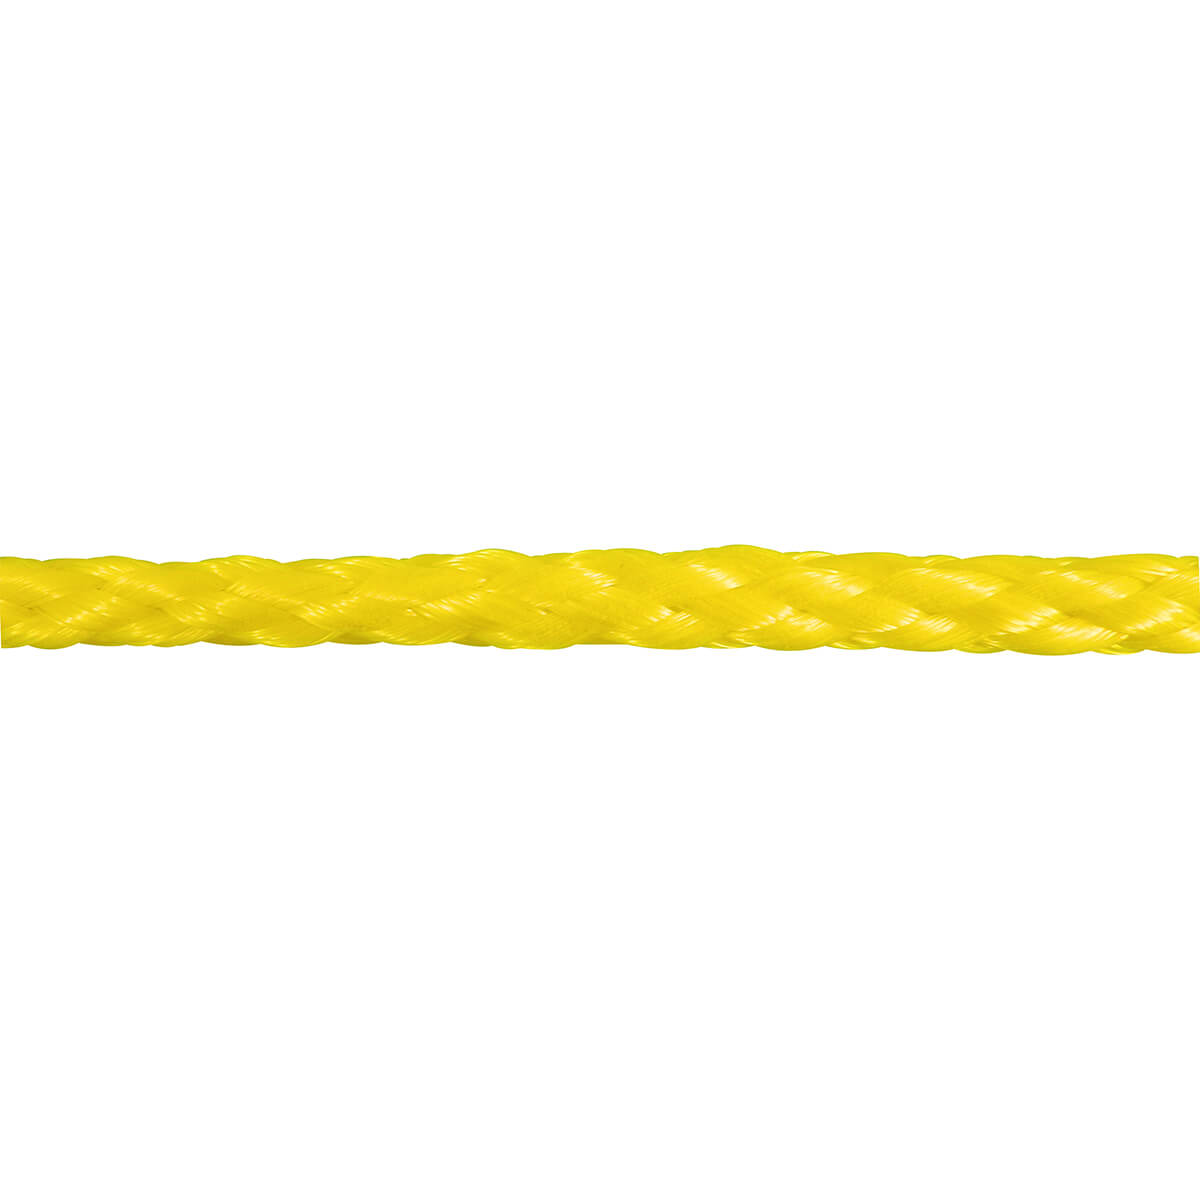 Polypropylene Hollow Core Rope - Yellow - 5/32-in x 45-ft